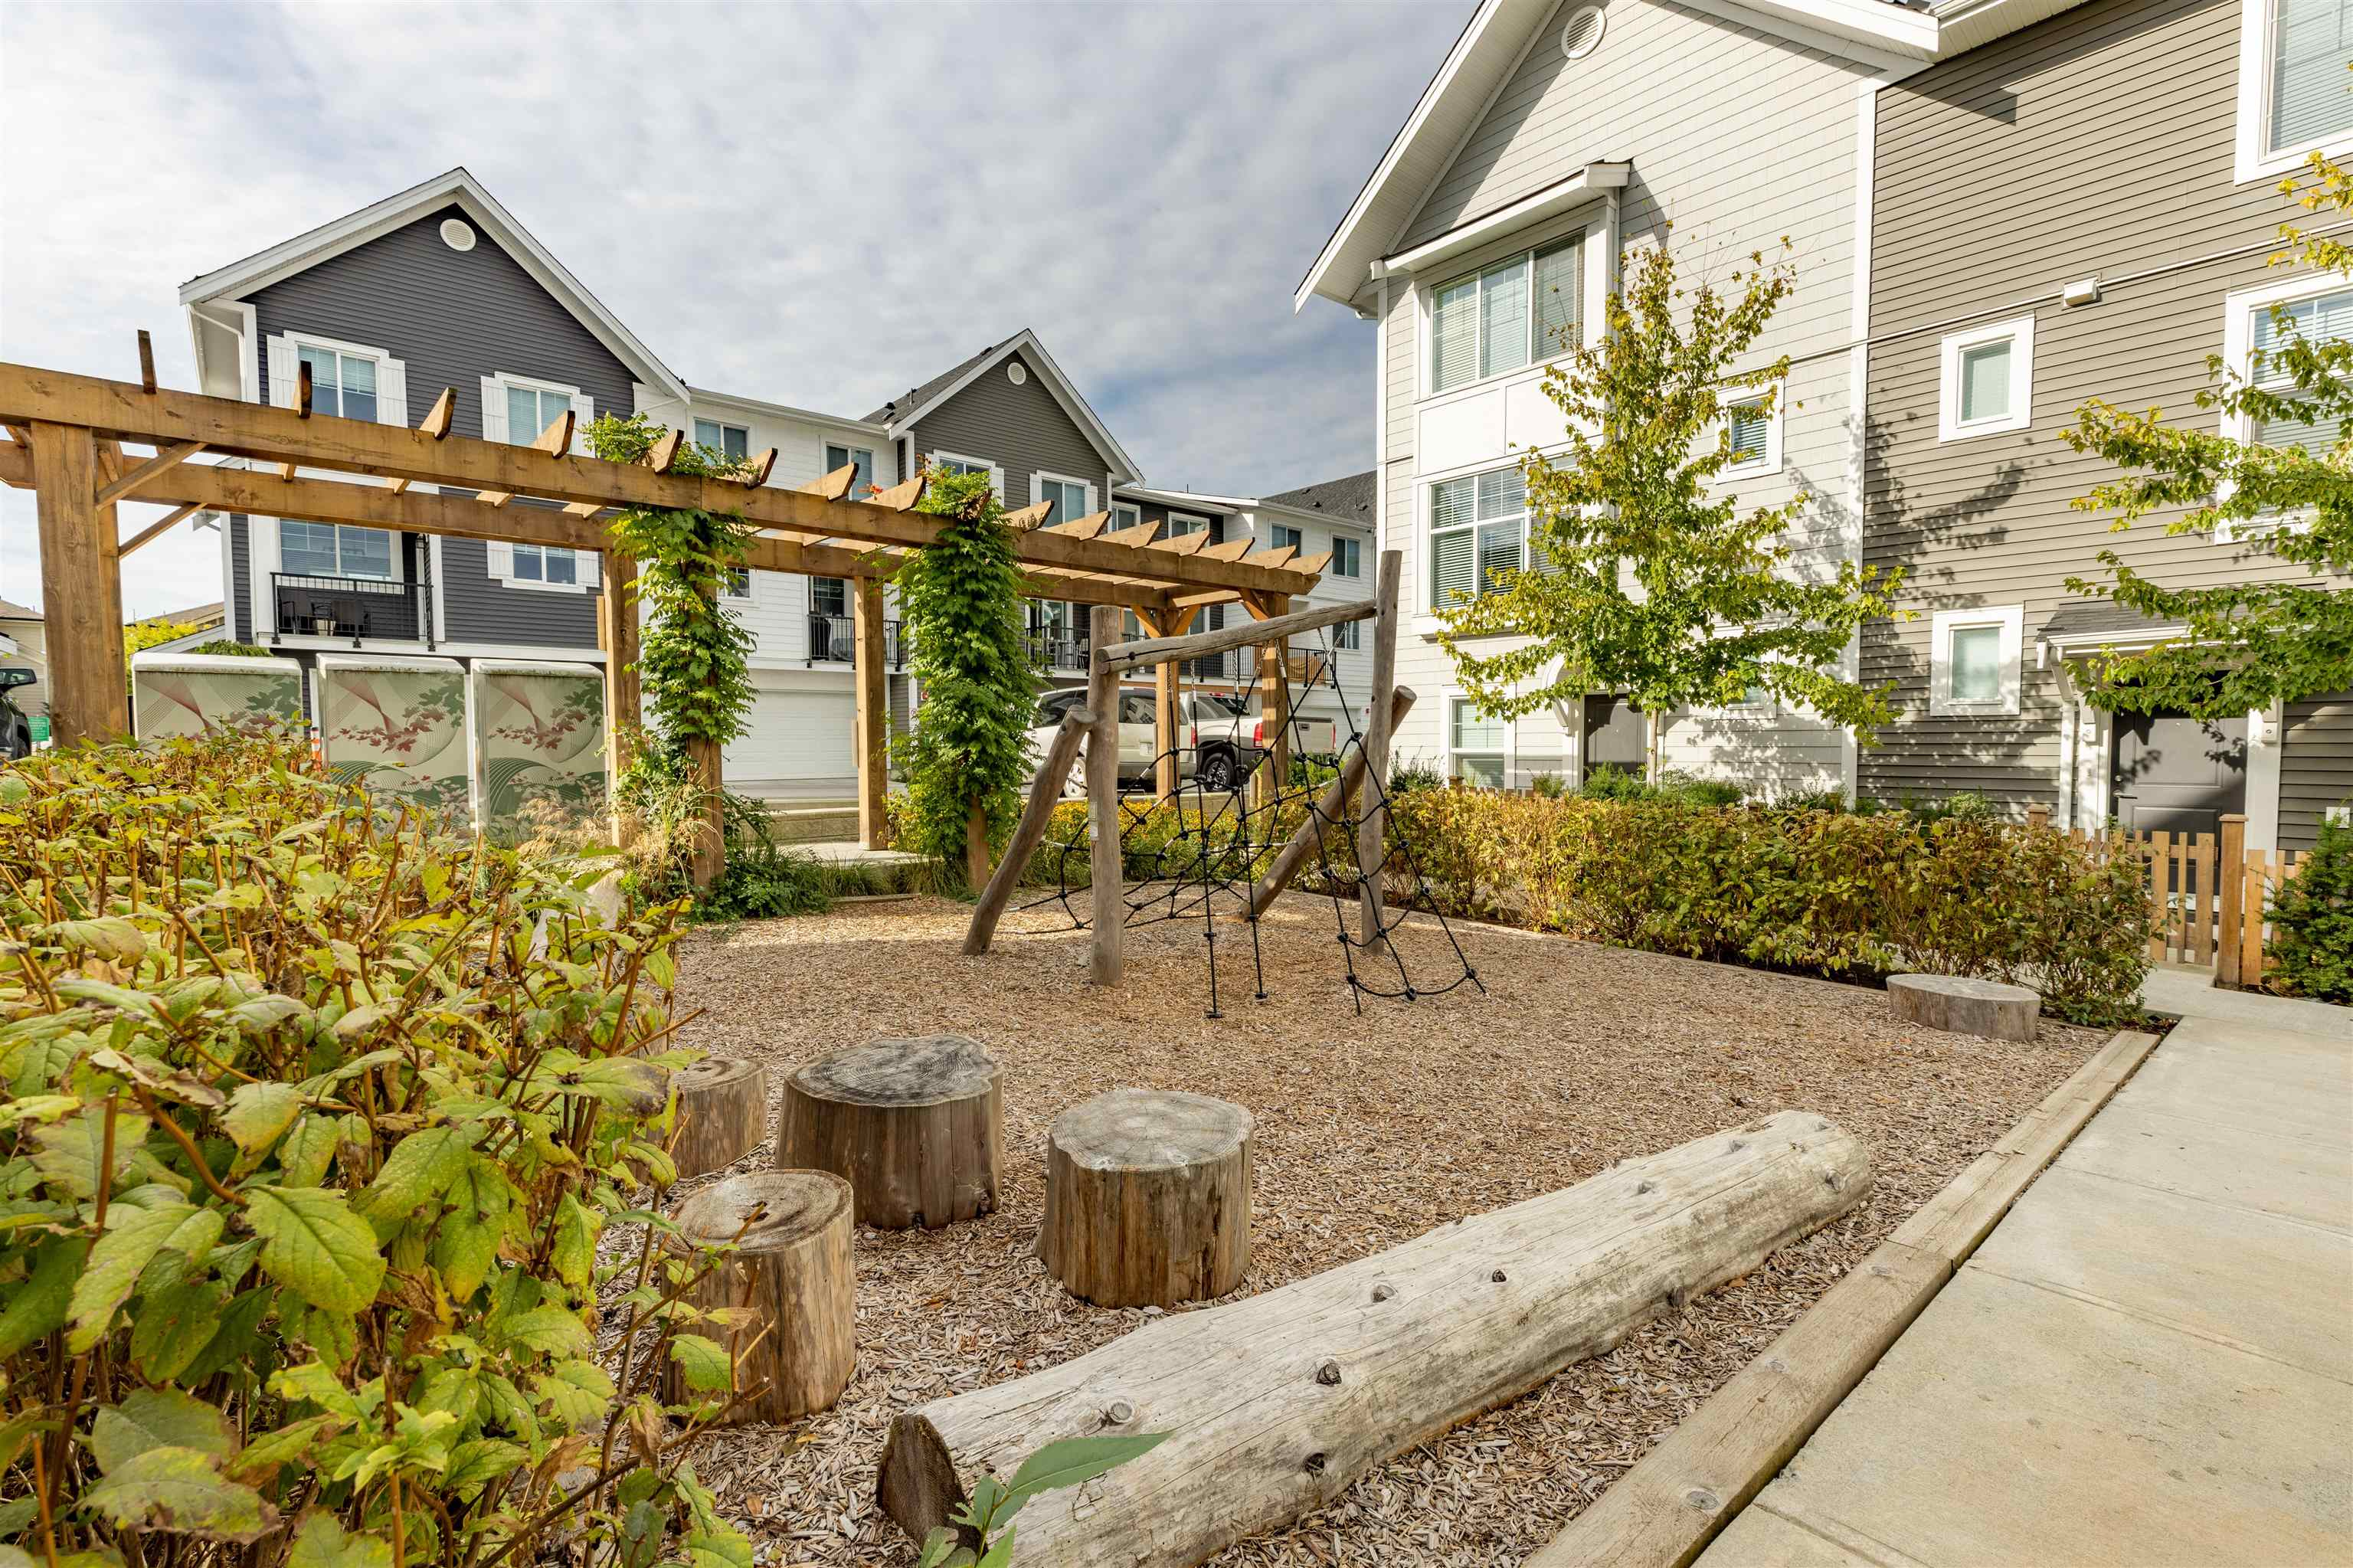 6 20451 84 AVENUE - Willoughby Heights Townhouse for sale, 4 Bedrooms (R2616635) - #36